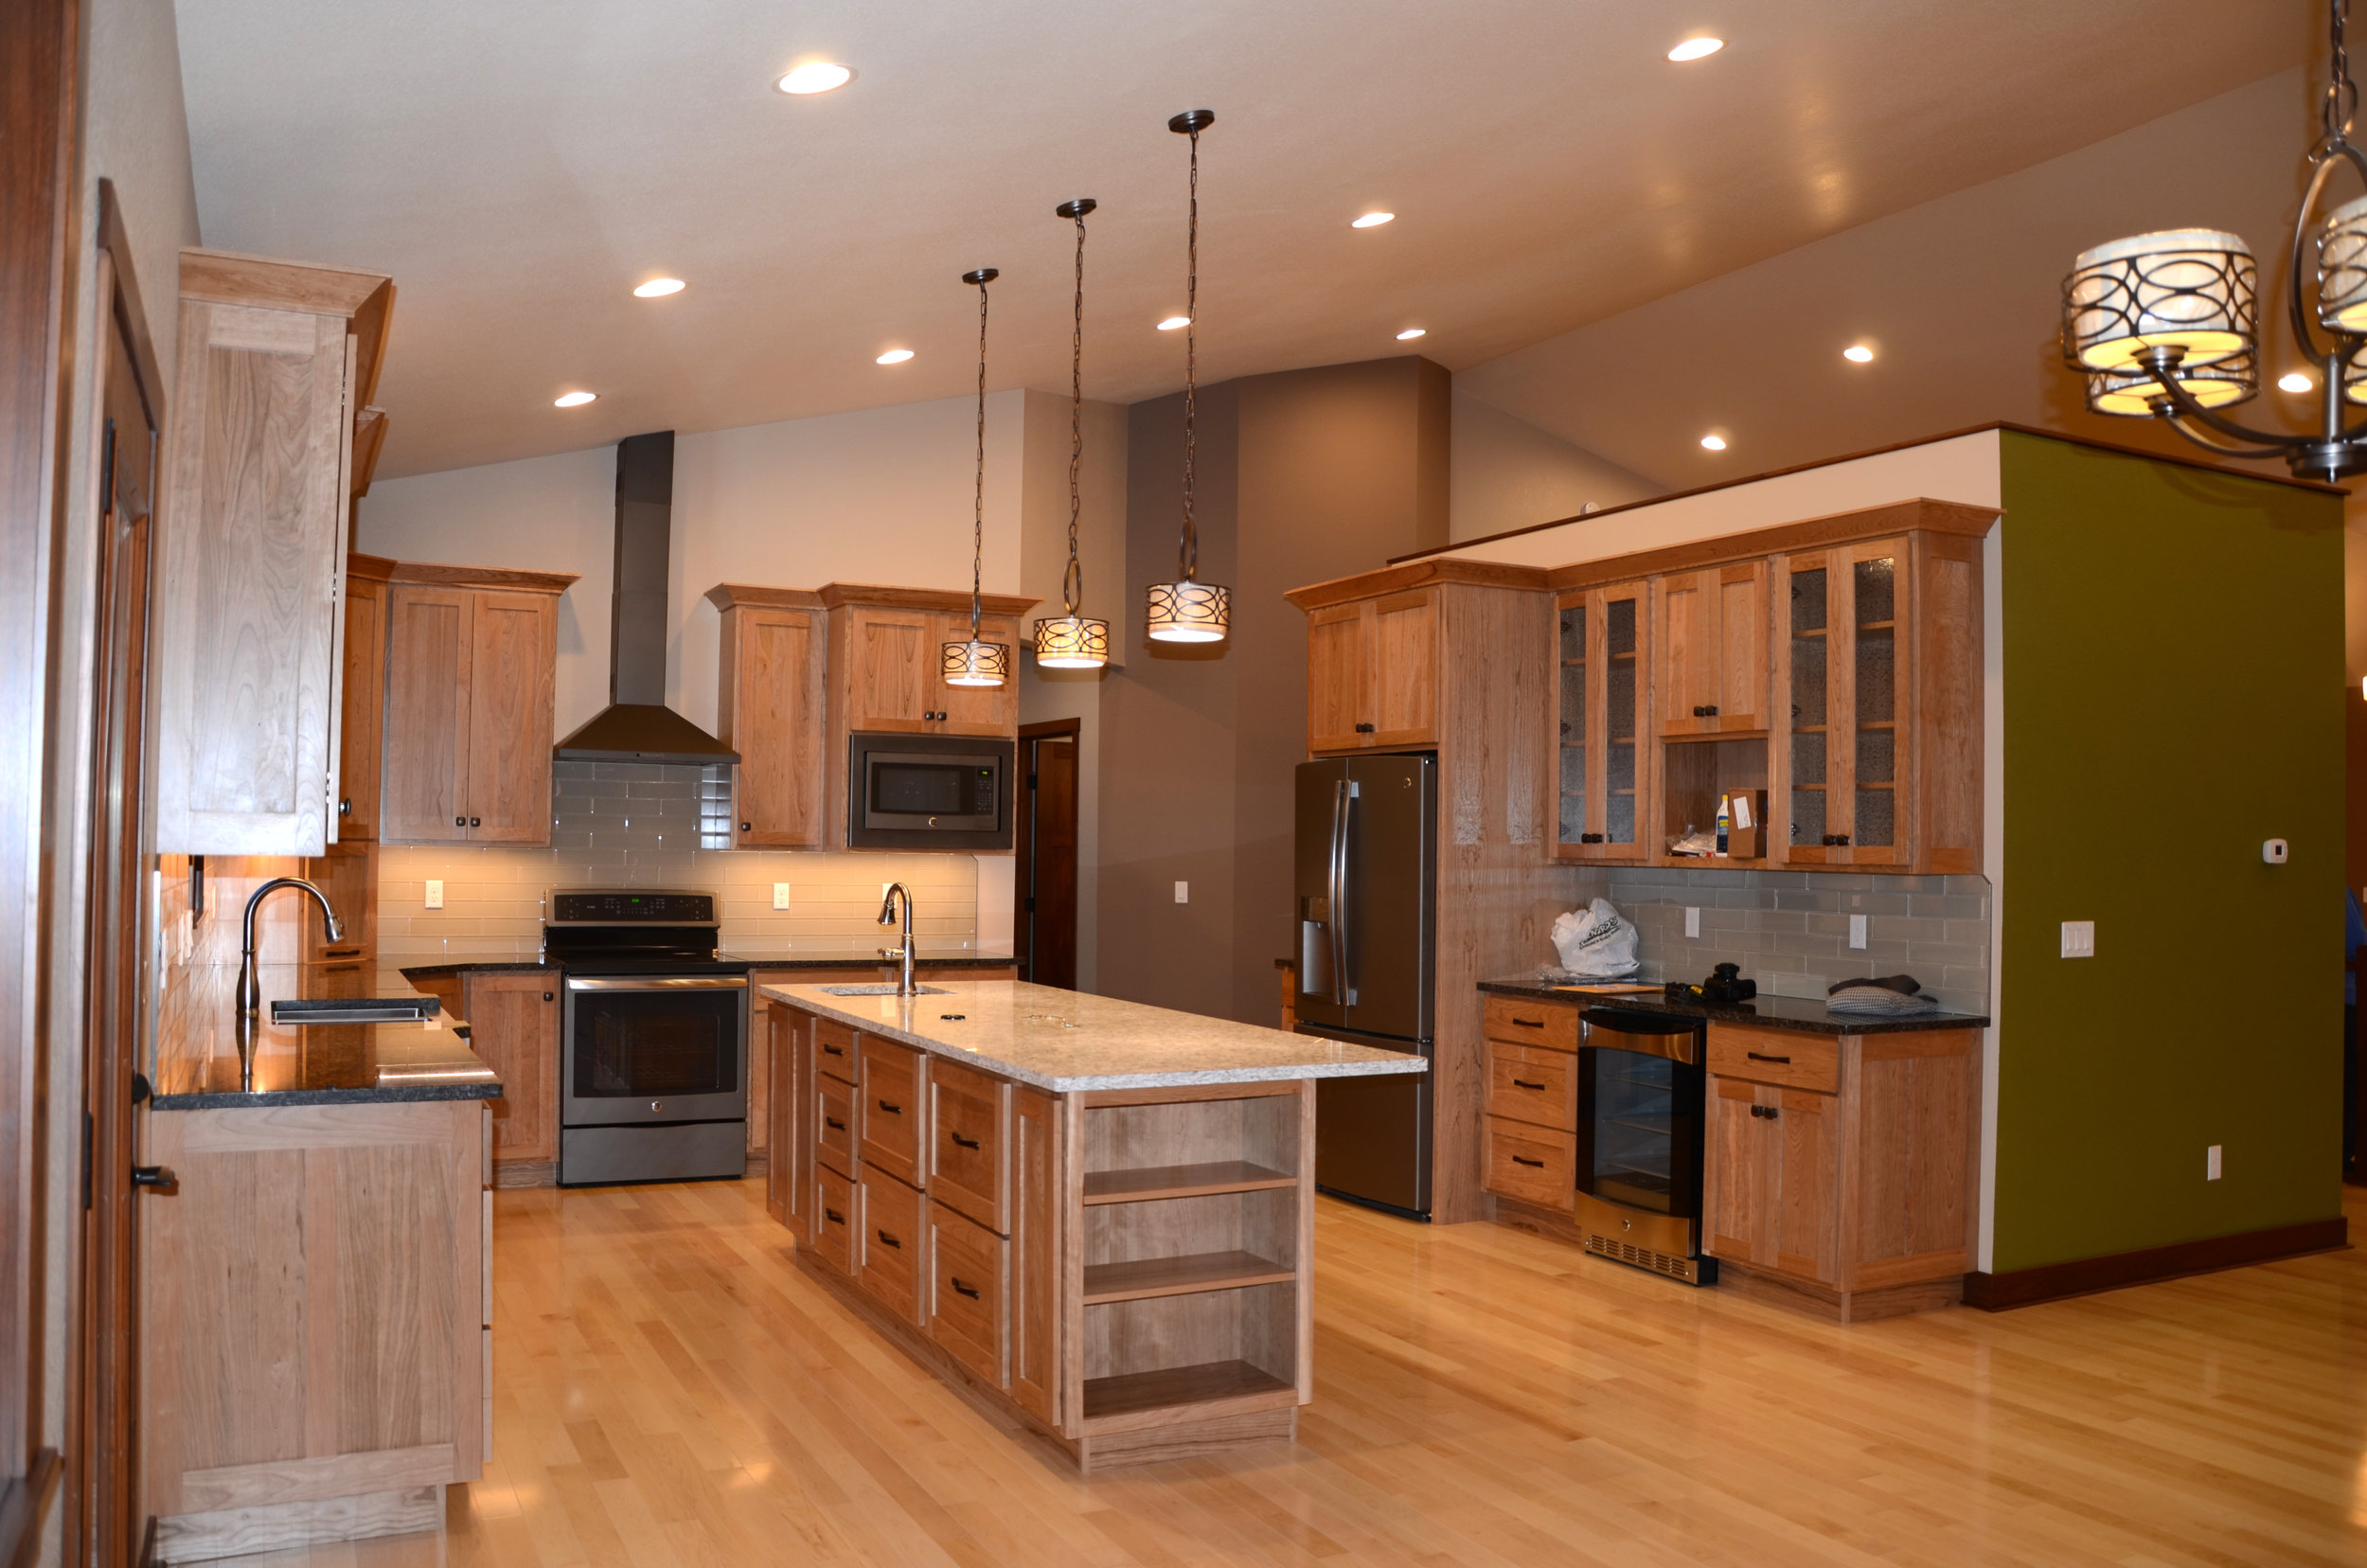 custom-home-build-kitchen-Nill-Construction-jamestown-nd.jpg